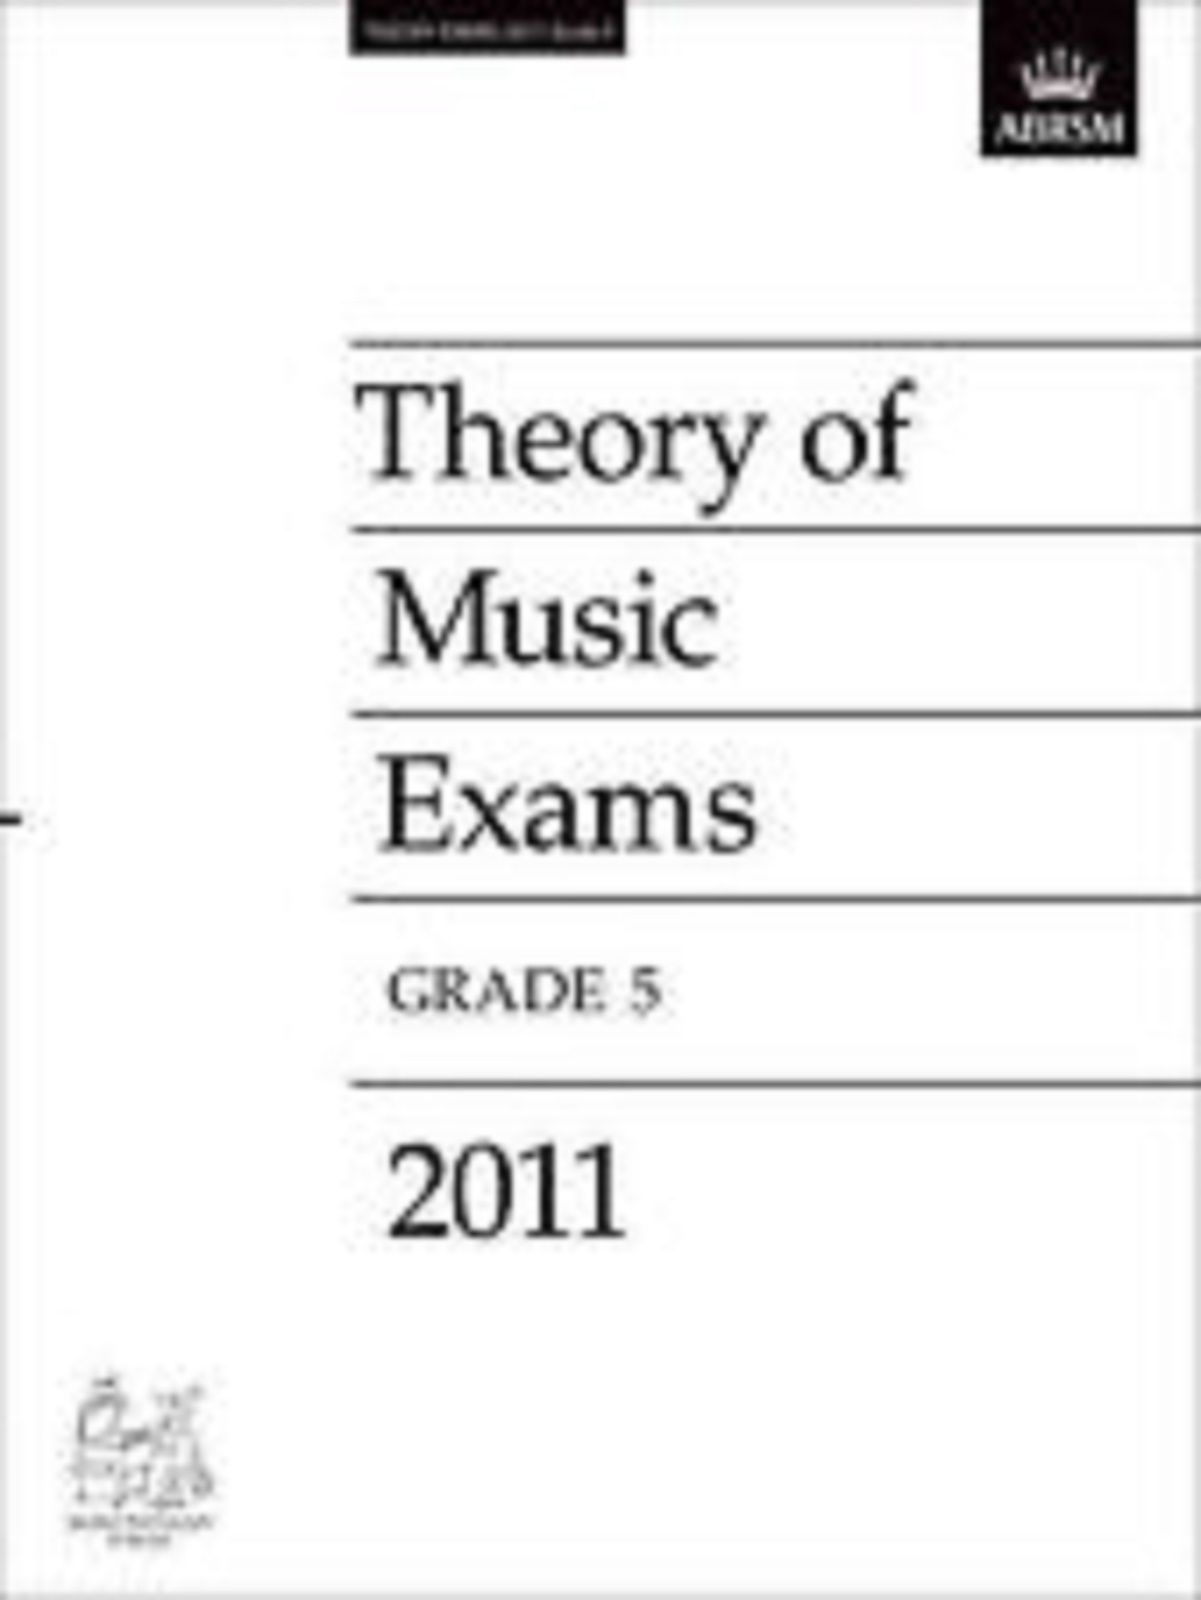 Theory of Music Exams Grade 5 2011 ABRSM Past Paper Practice Book S126